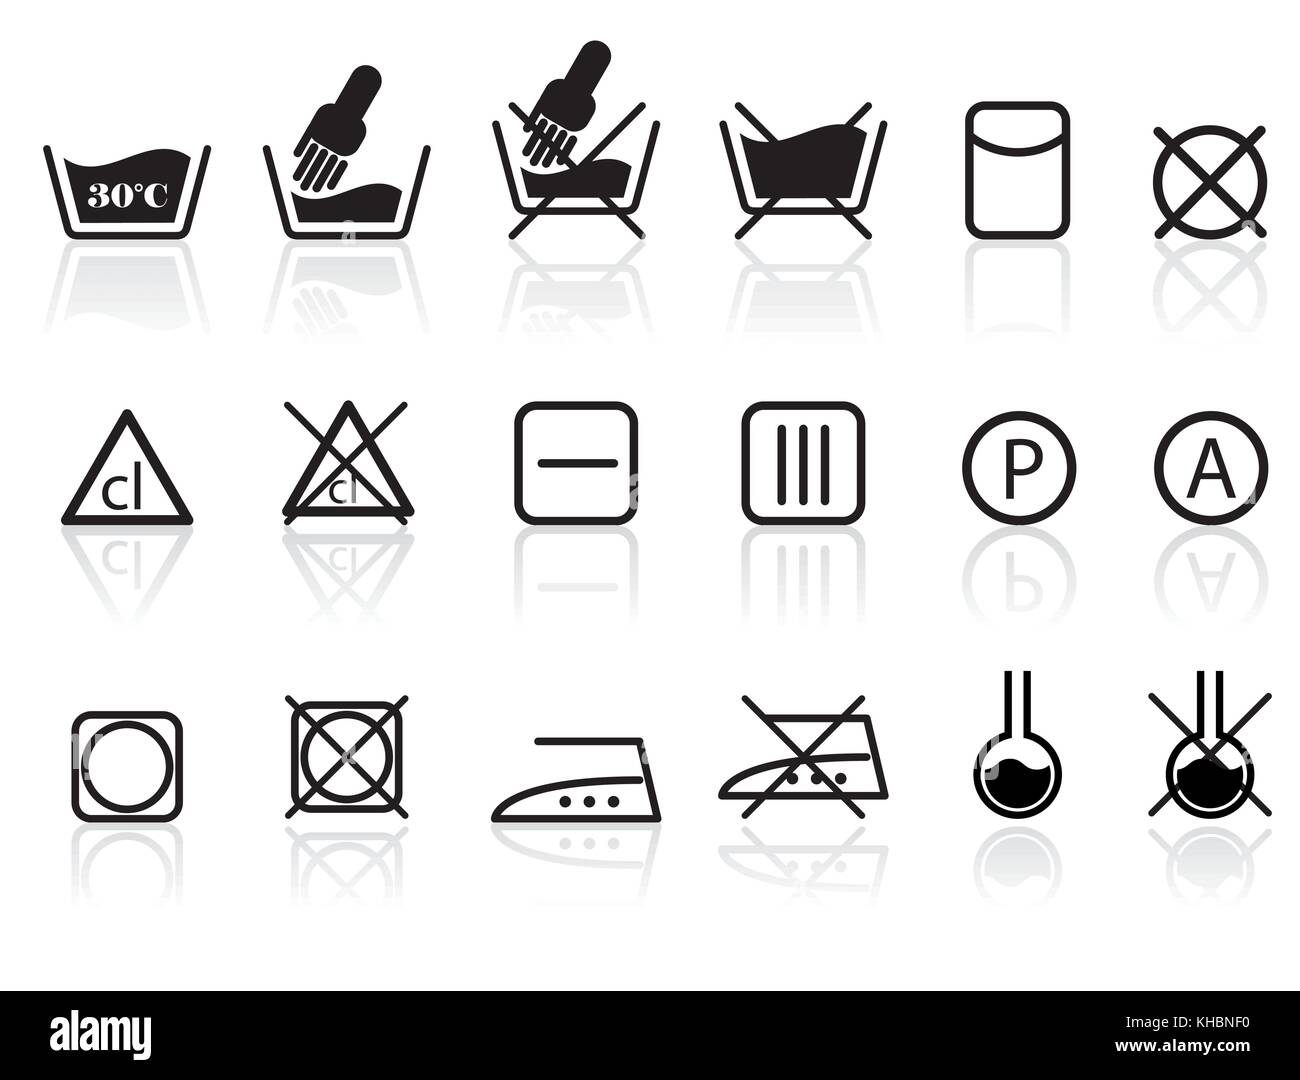 Laundry care label stock photos laundry care label stock images laundry and textile care symbols vector icon set stock image buycottarizona Gallery